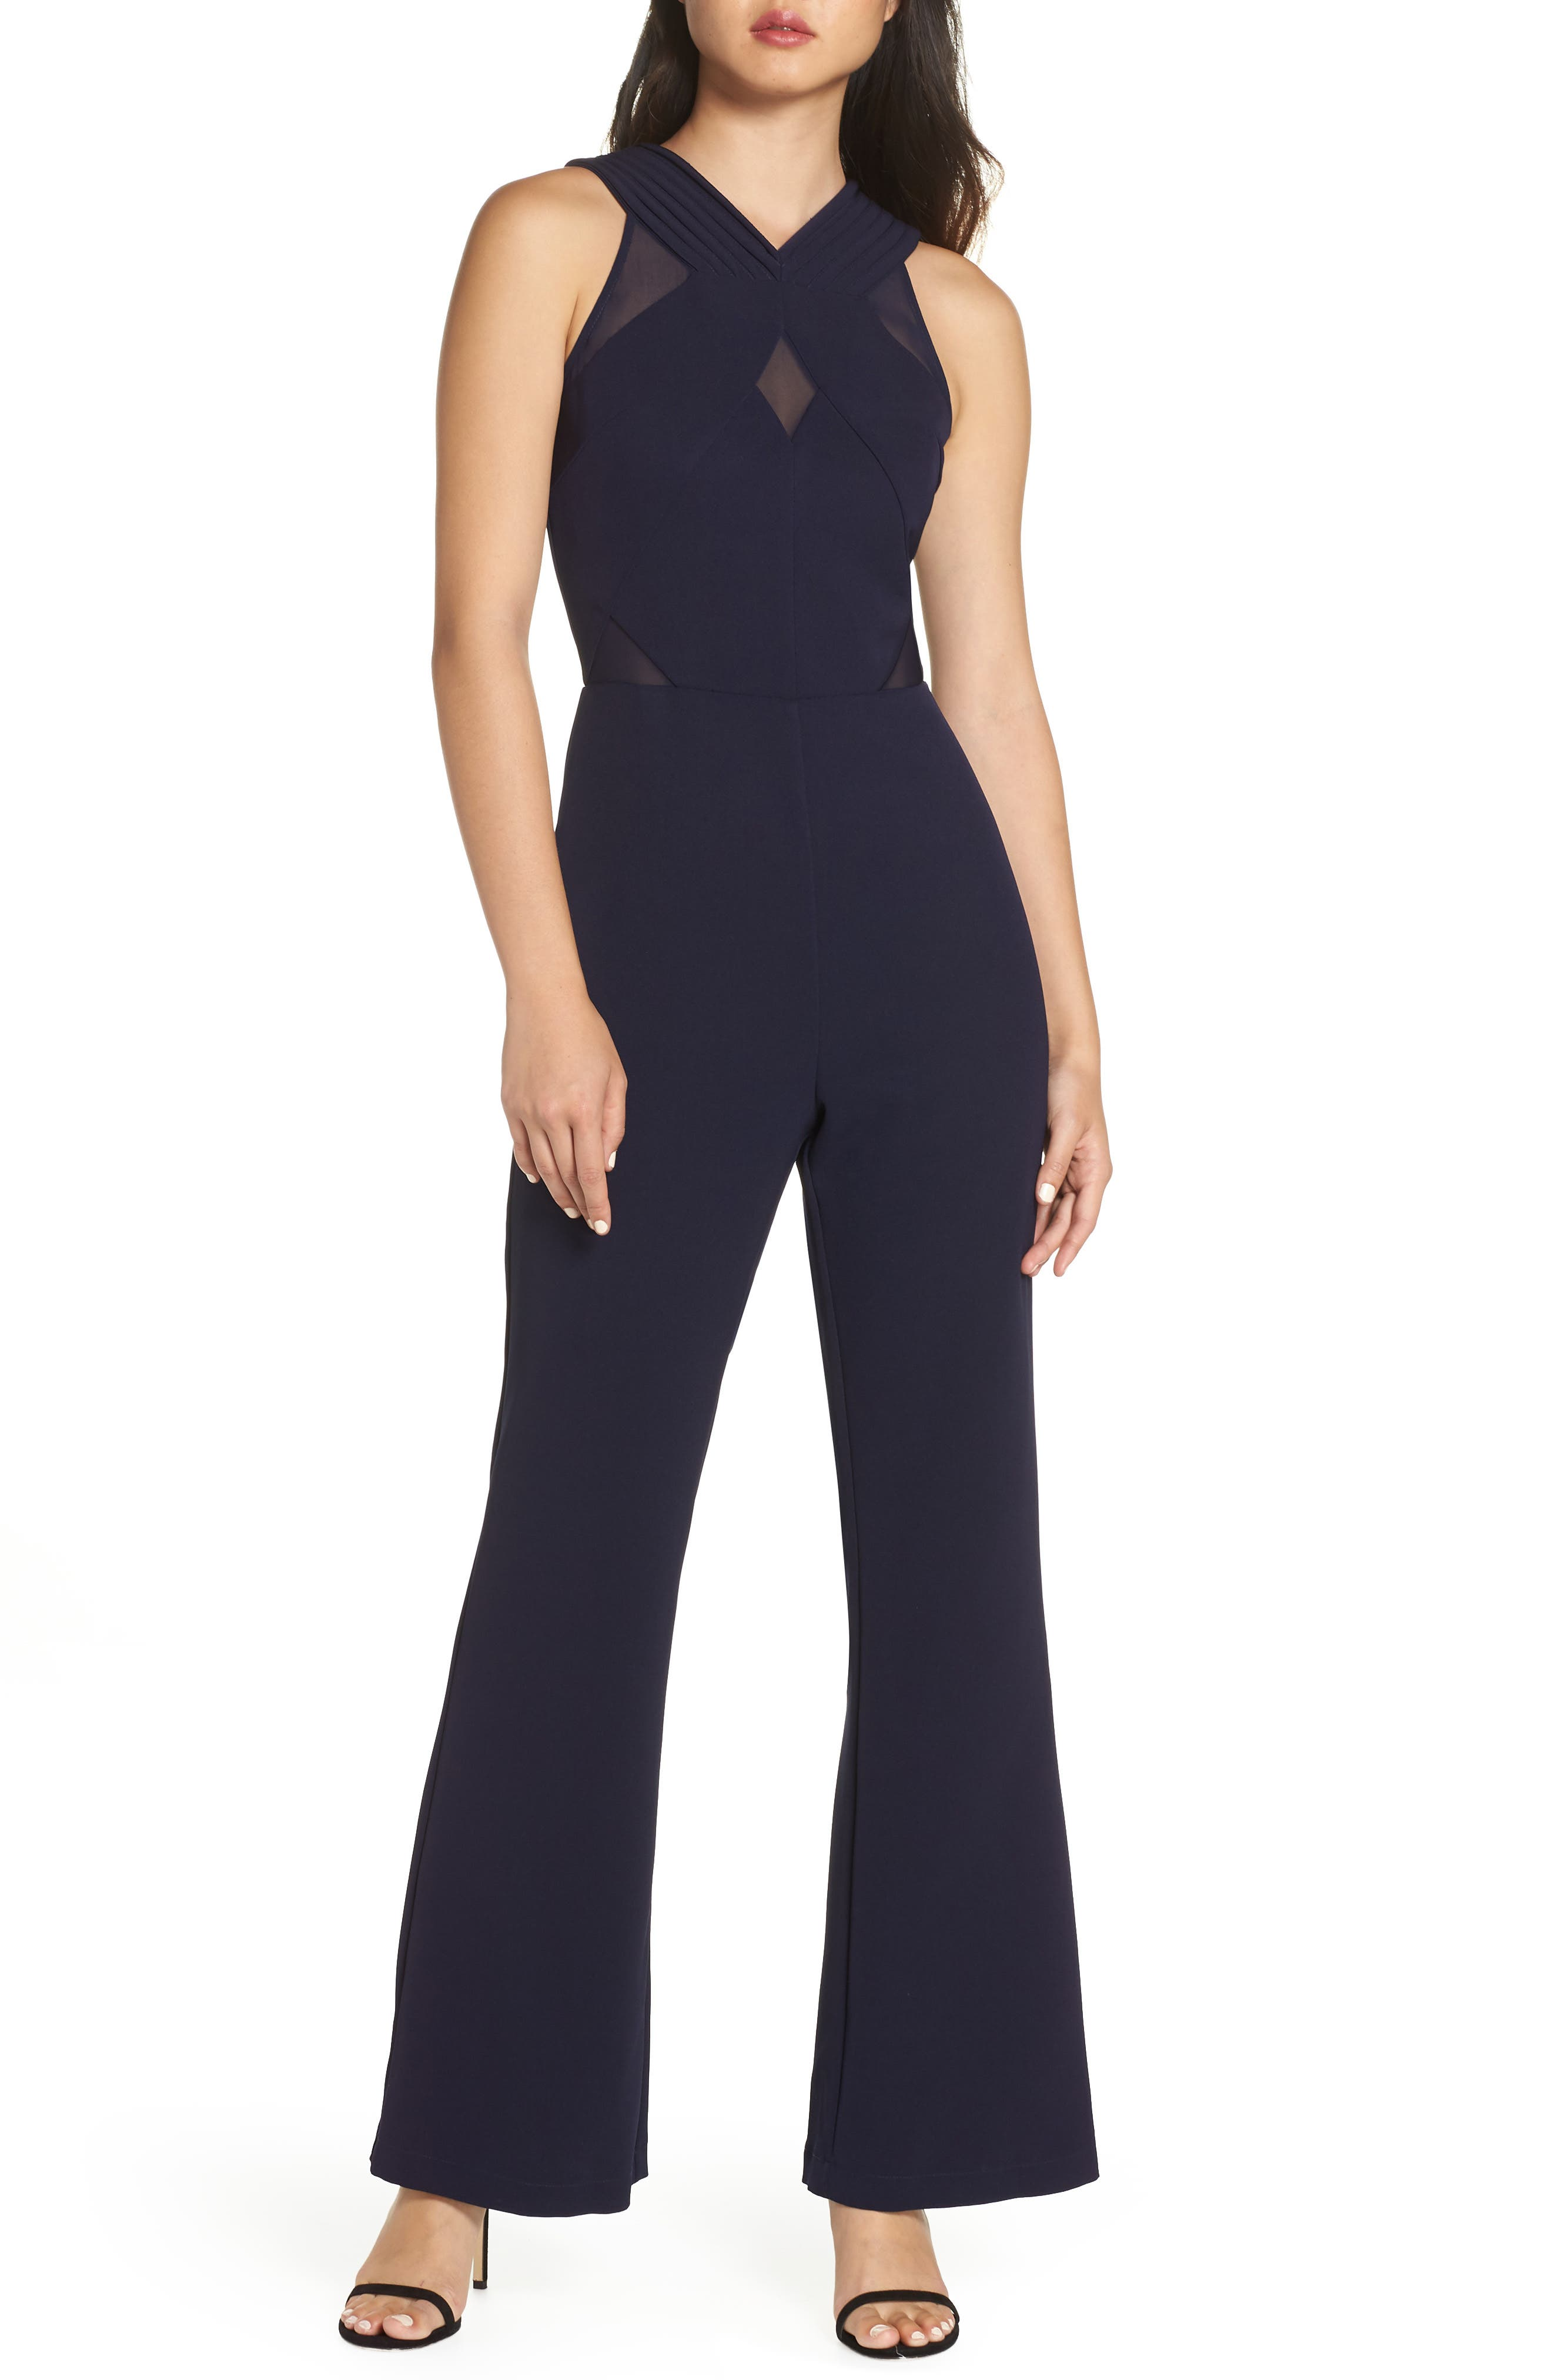 HARLYN Illusion Inset Jumpsuit in Navy